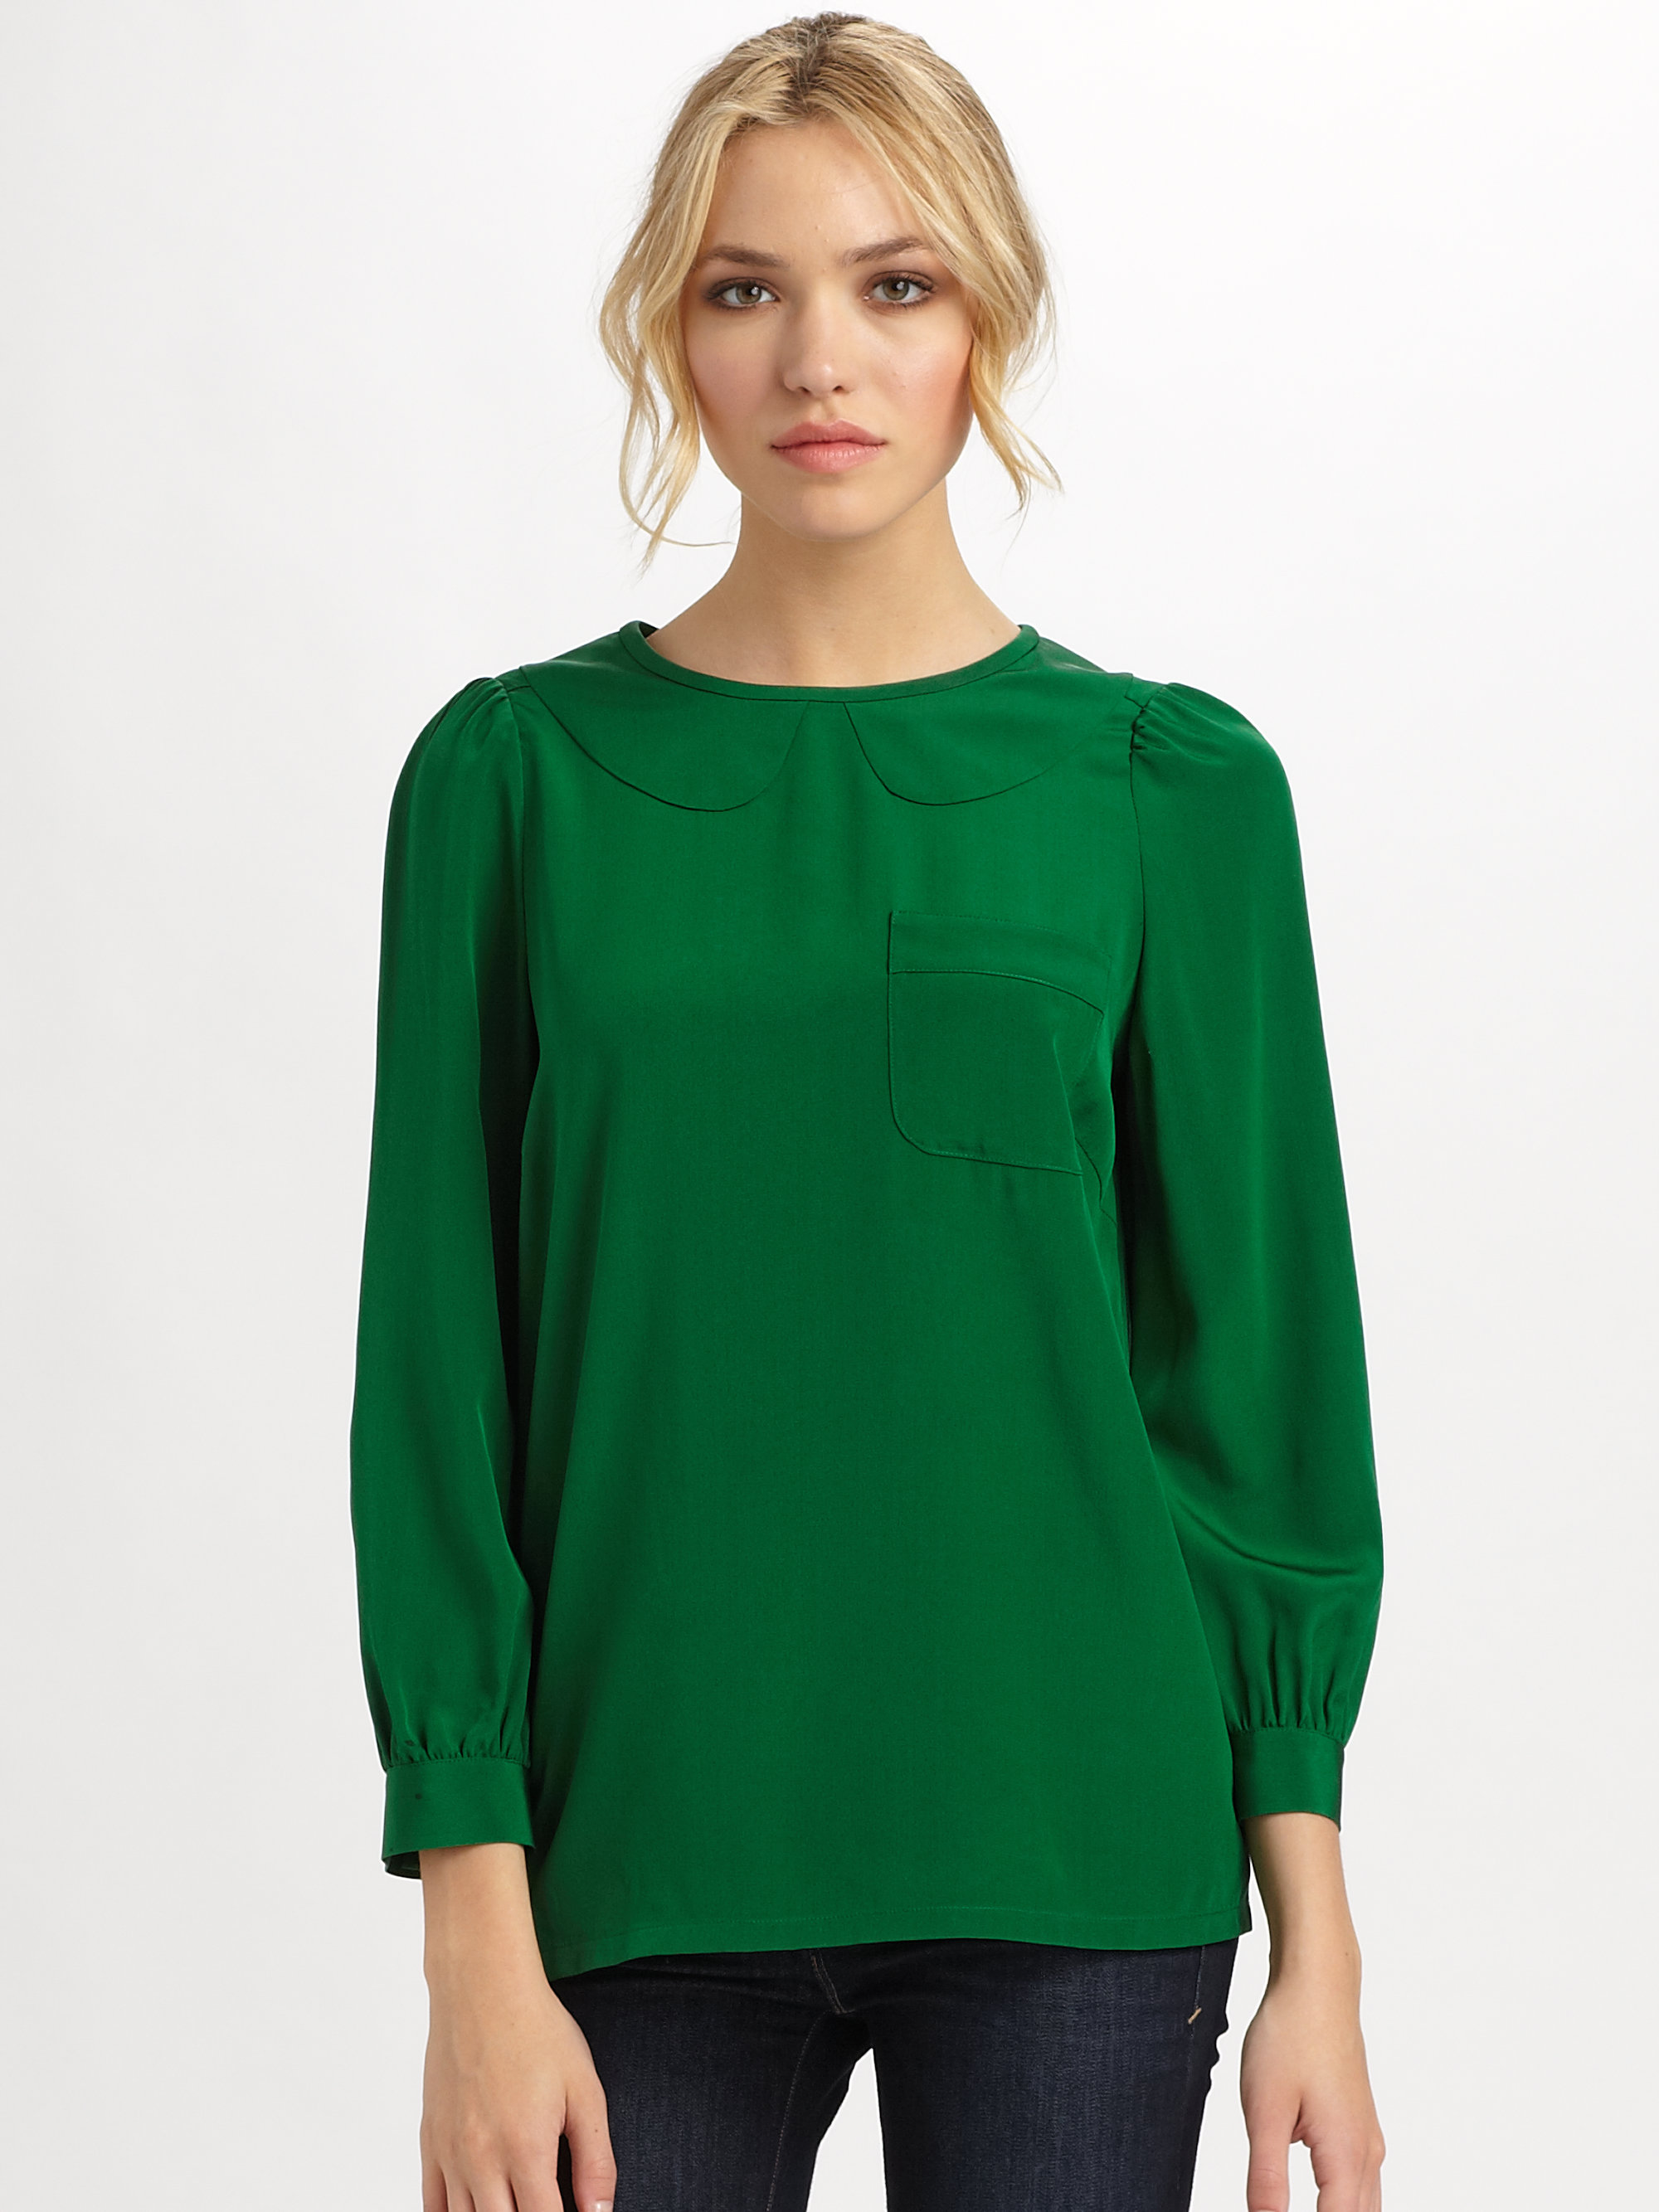 Shop for green blouse womens online at Target. Free shipping on purchases over $35 and save 5% every day with your Target REDcard.